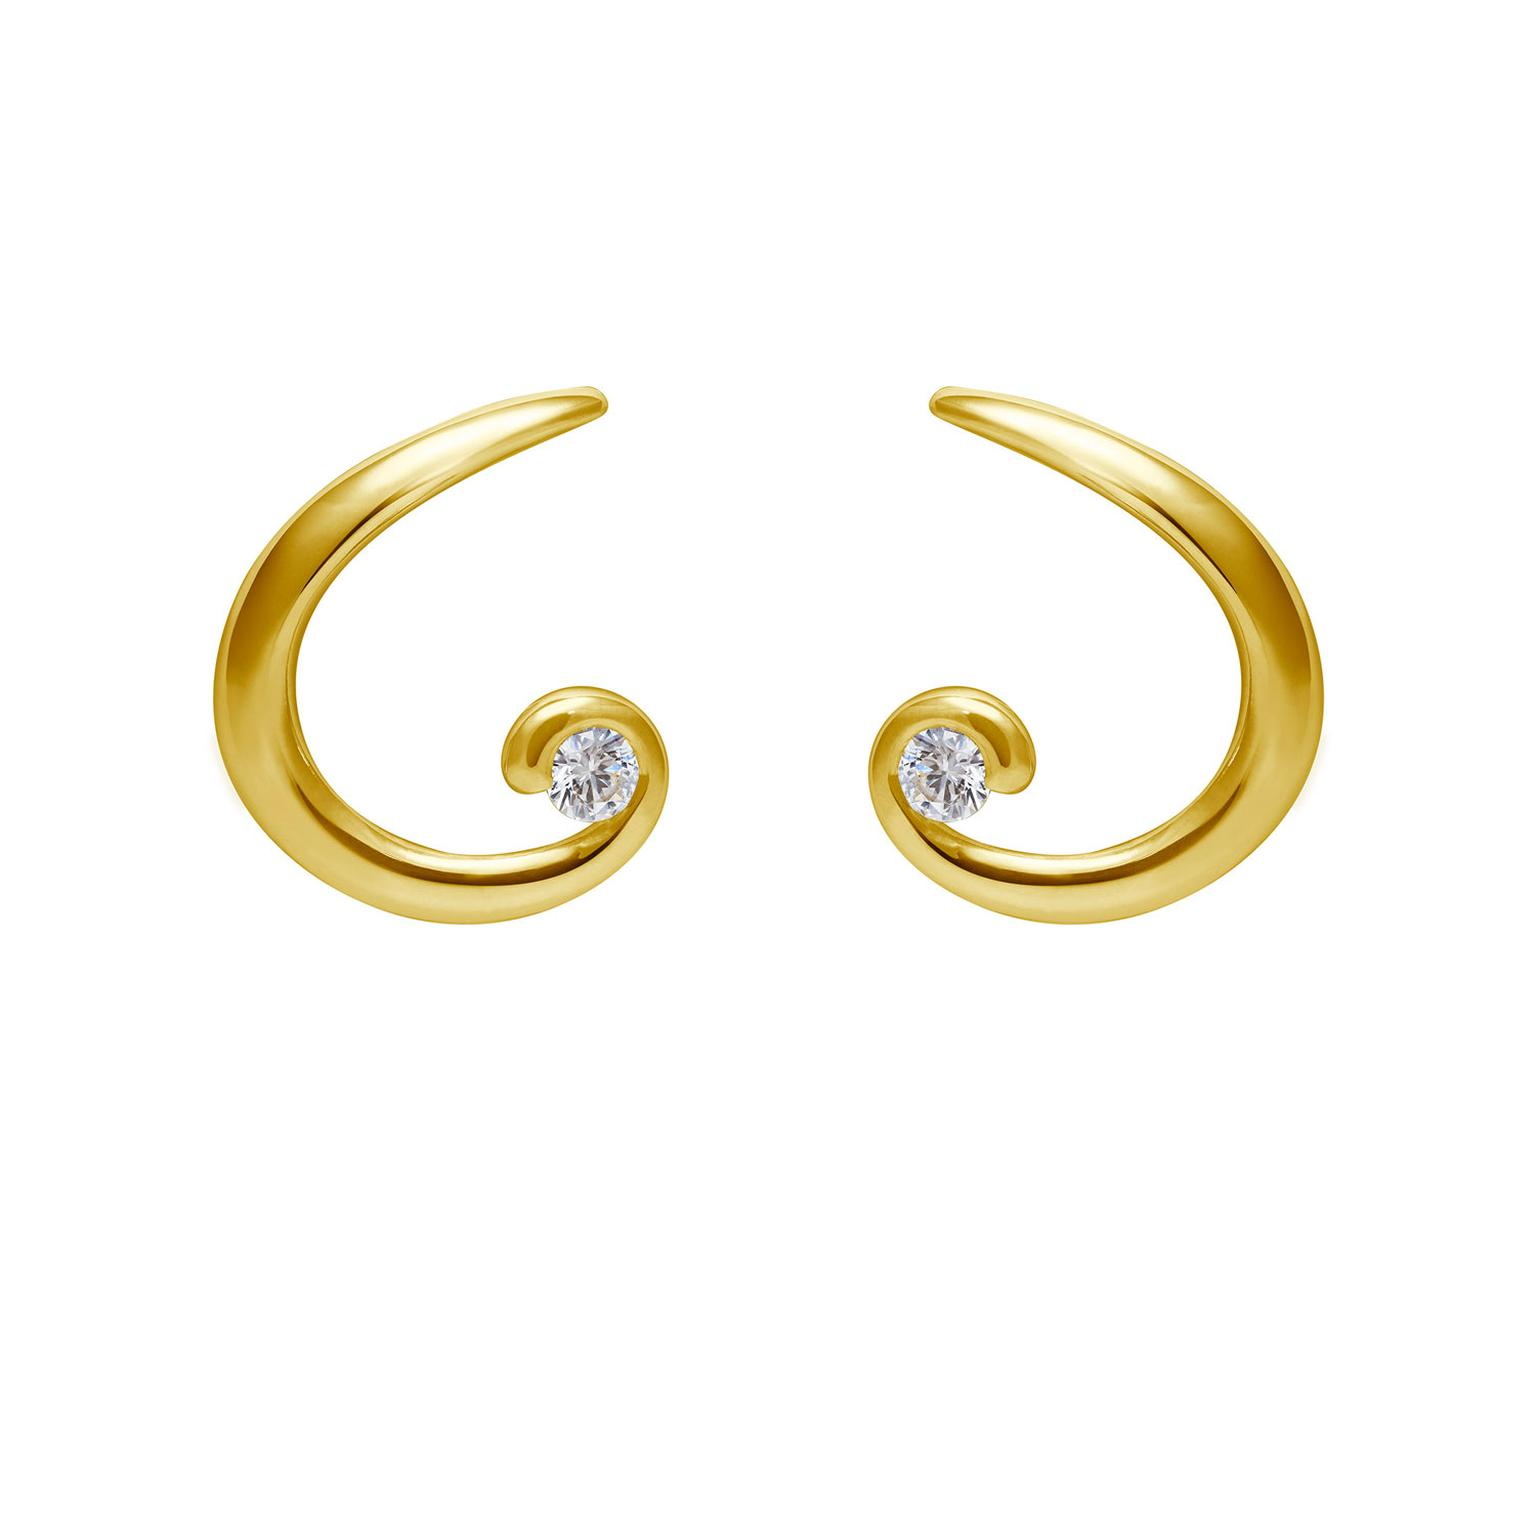 Arctic Circle gold earrings with Canadian diamonds